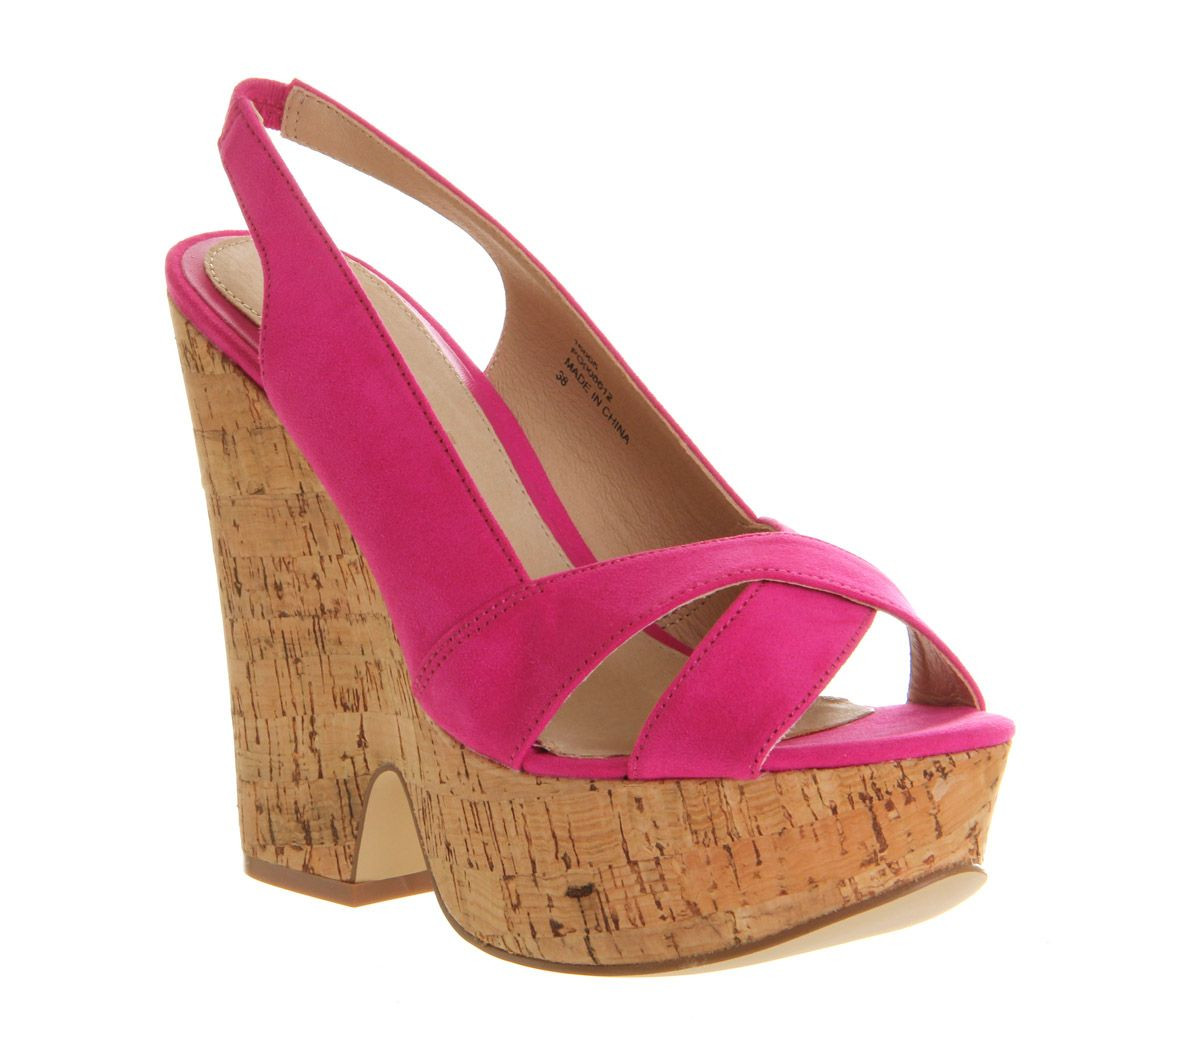 Jet set wedges